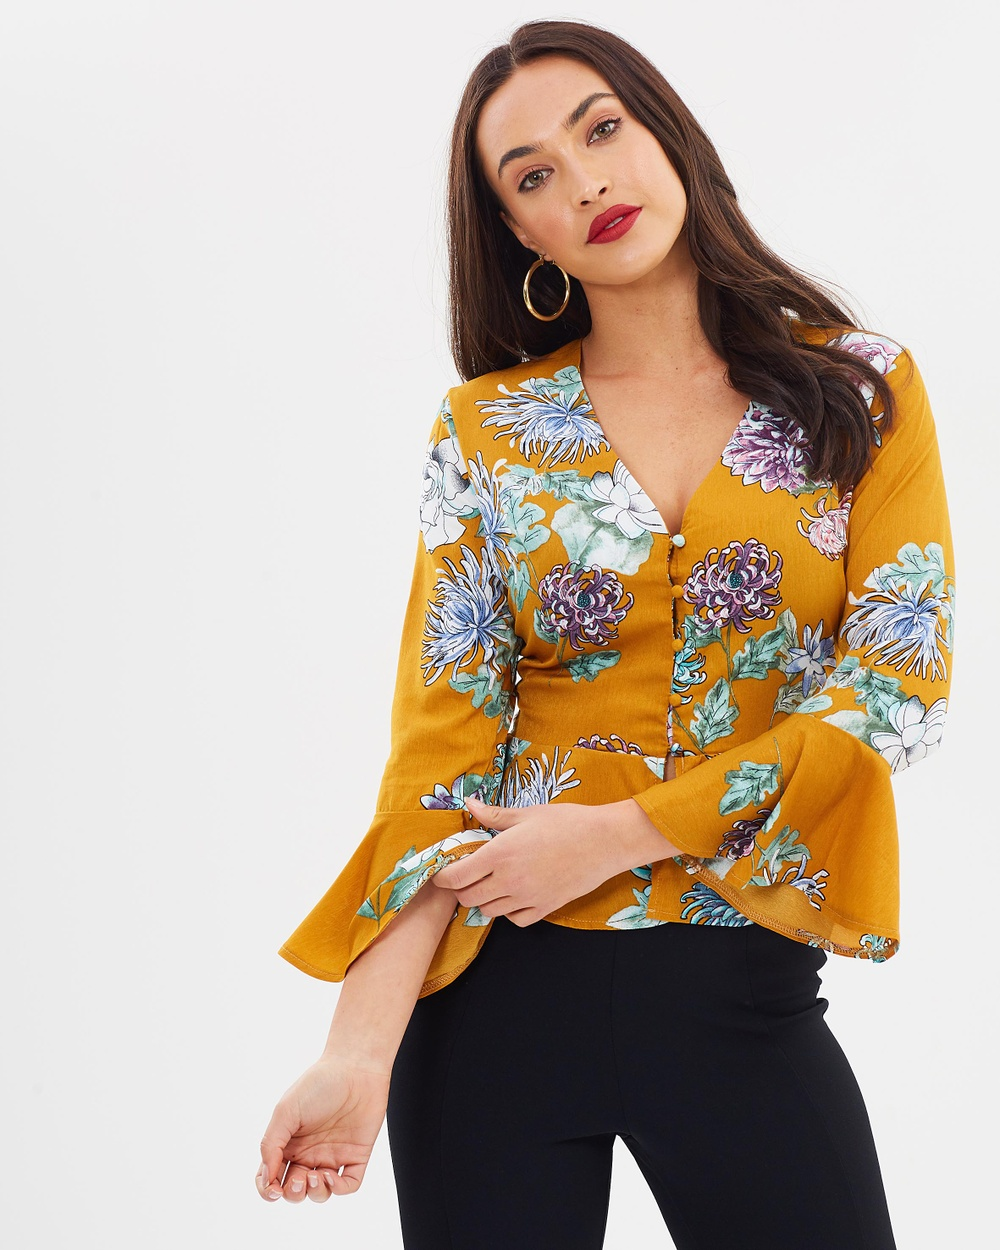 Missguided Satin Floral Button Down Top Tops Gold Satin Floral Button Down Top